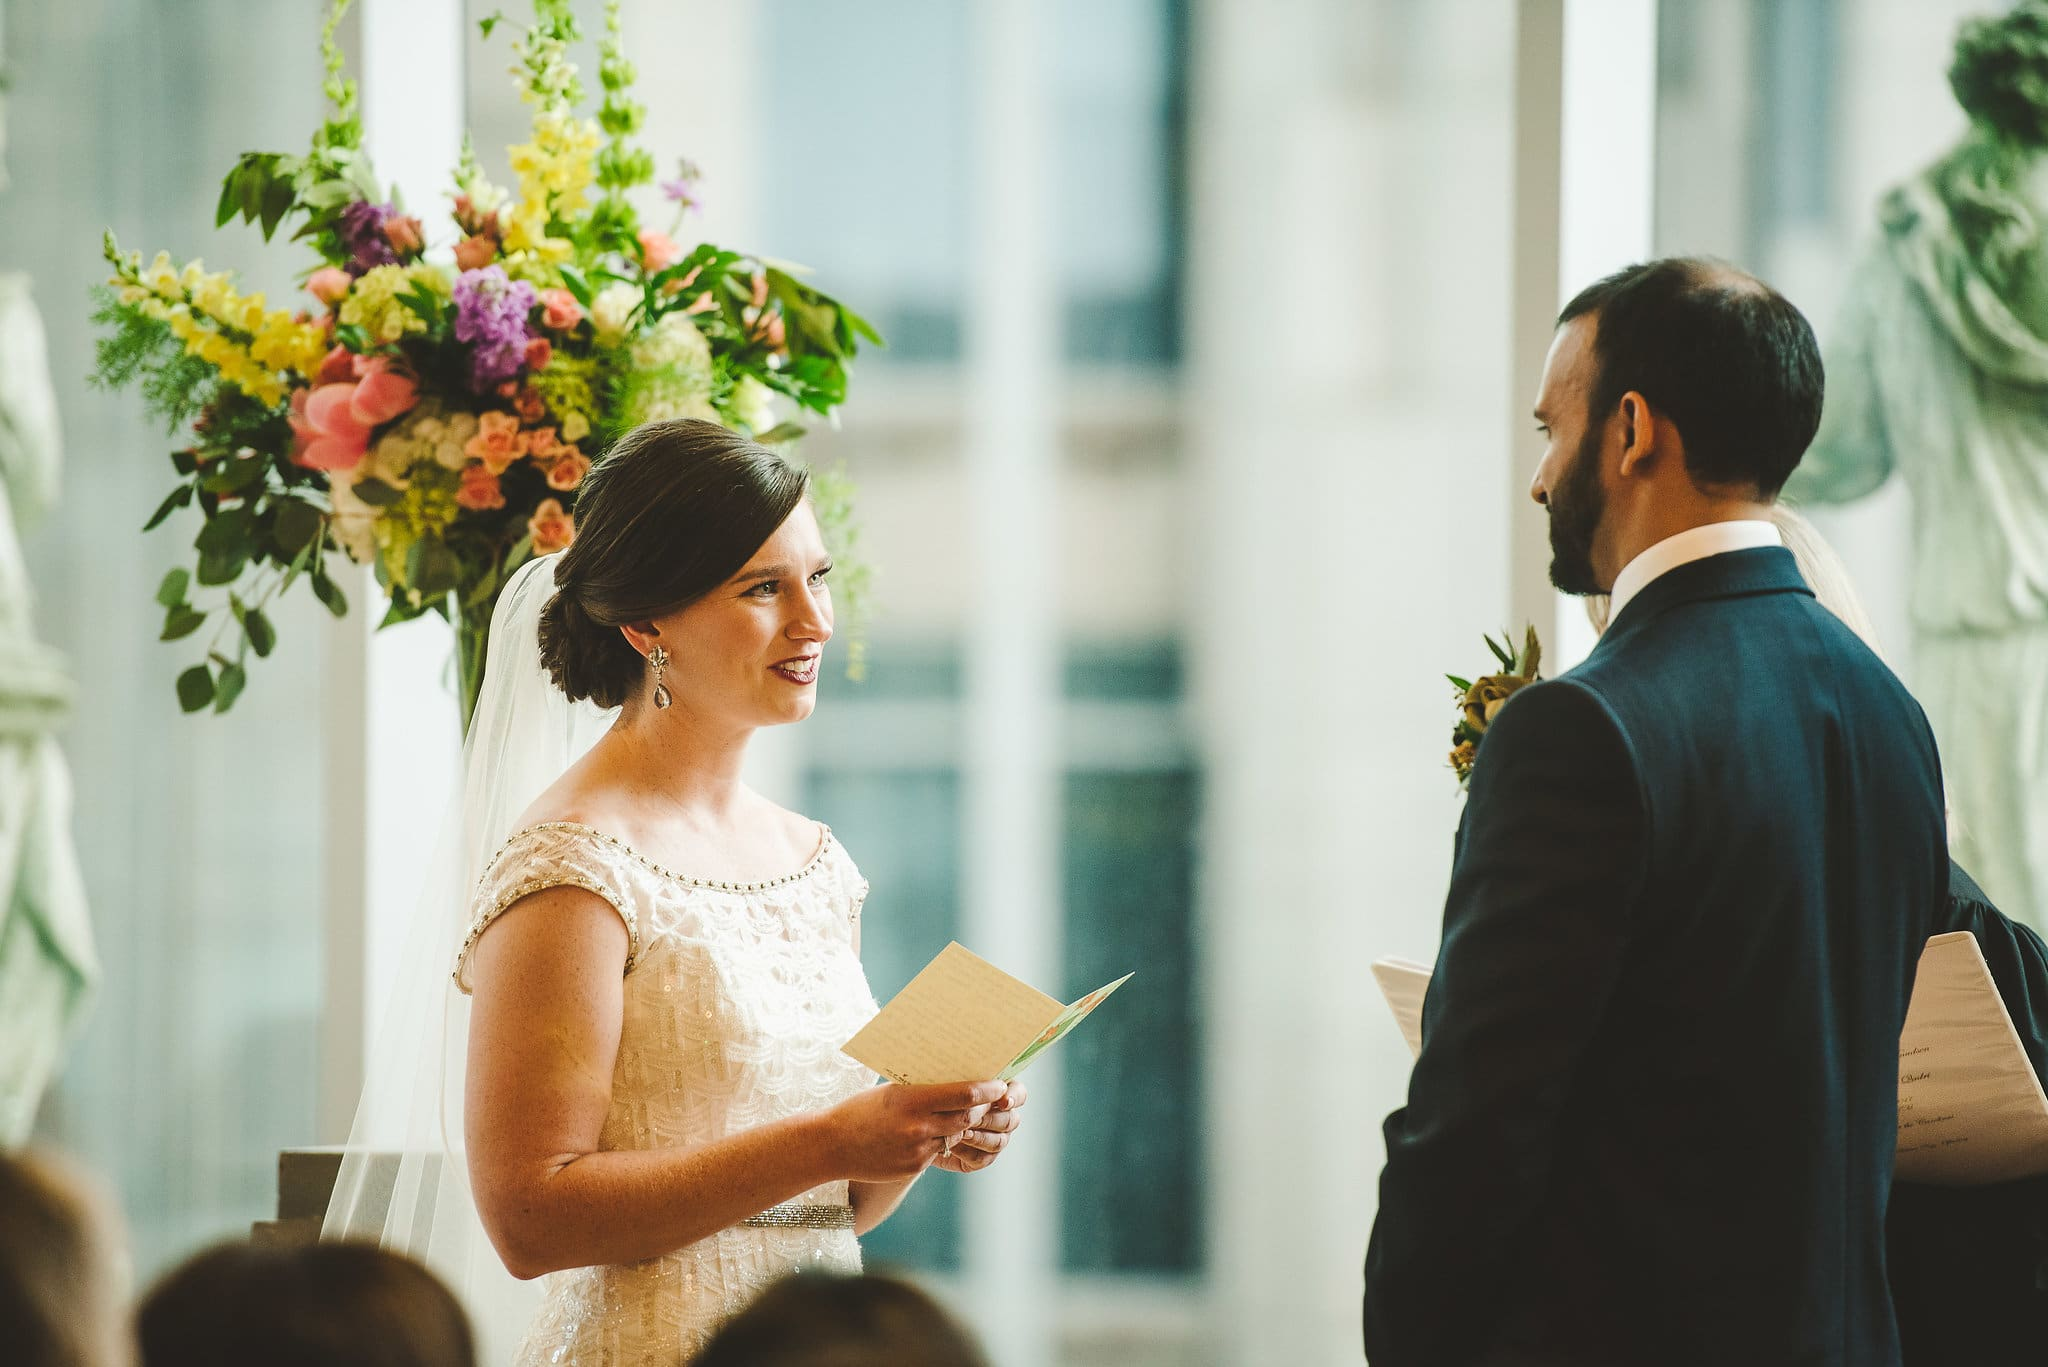 exchanging vows during a Wedding ceremony at Foundation for the Carolinas in uptown Charlotte, NC